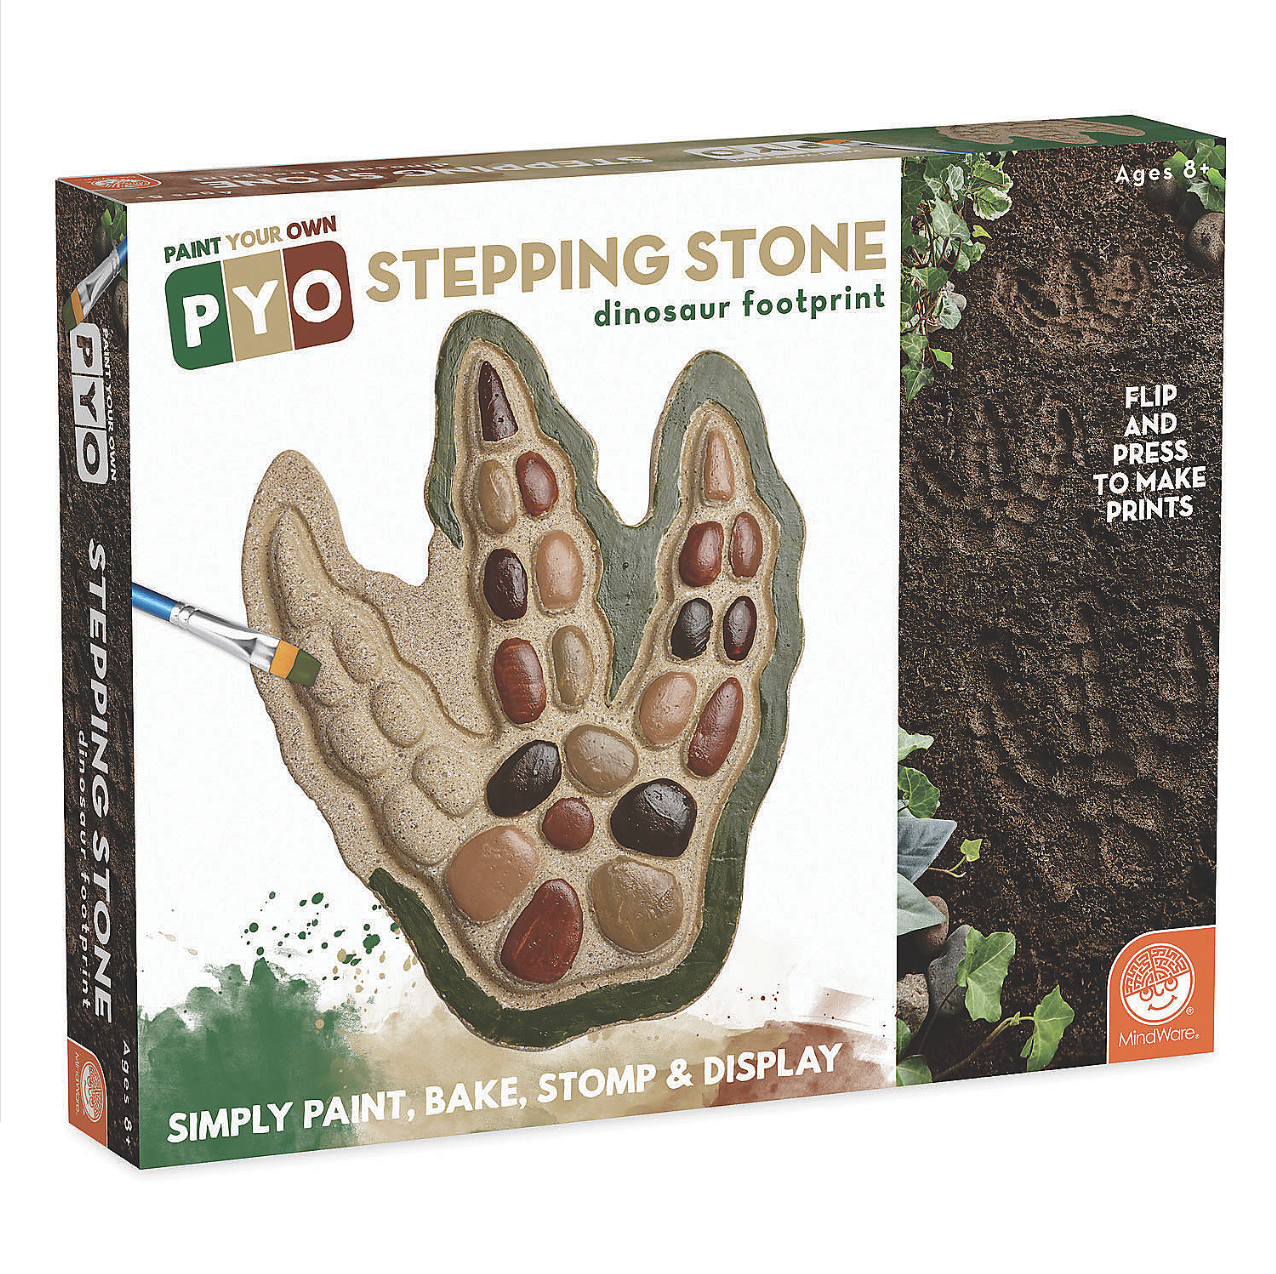 Mindware Paint Your Own Stepping Stone: Dinosaur